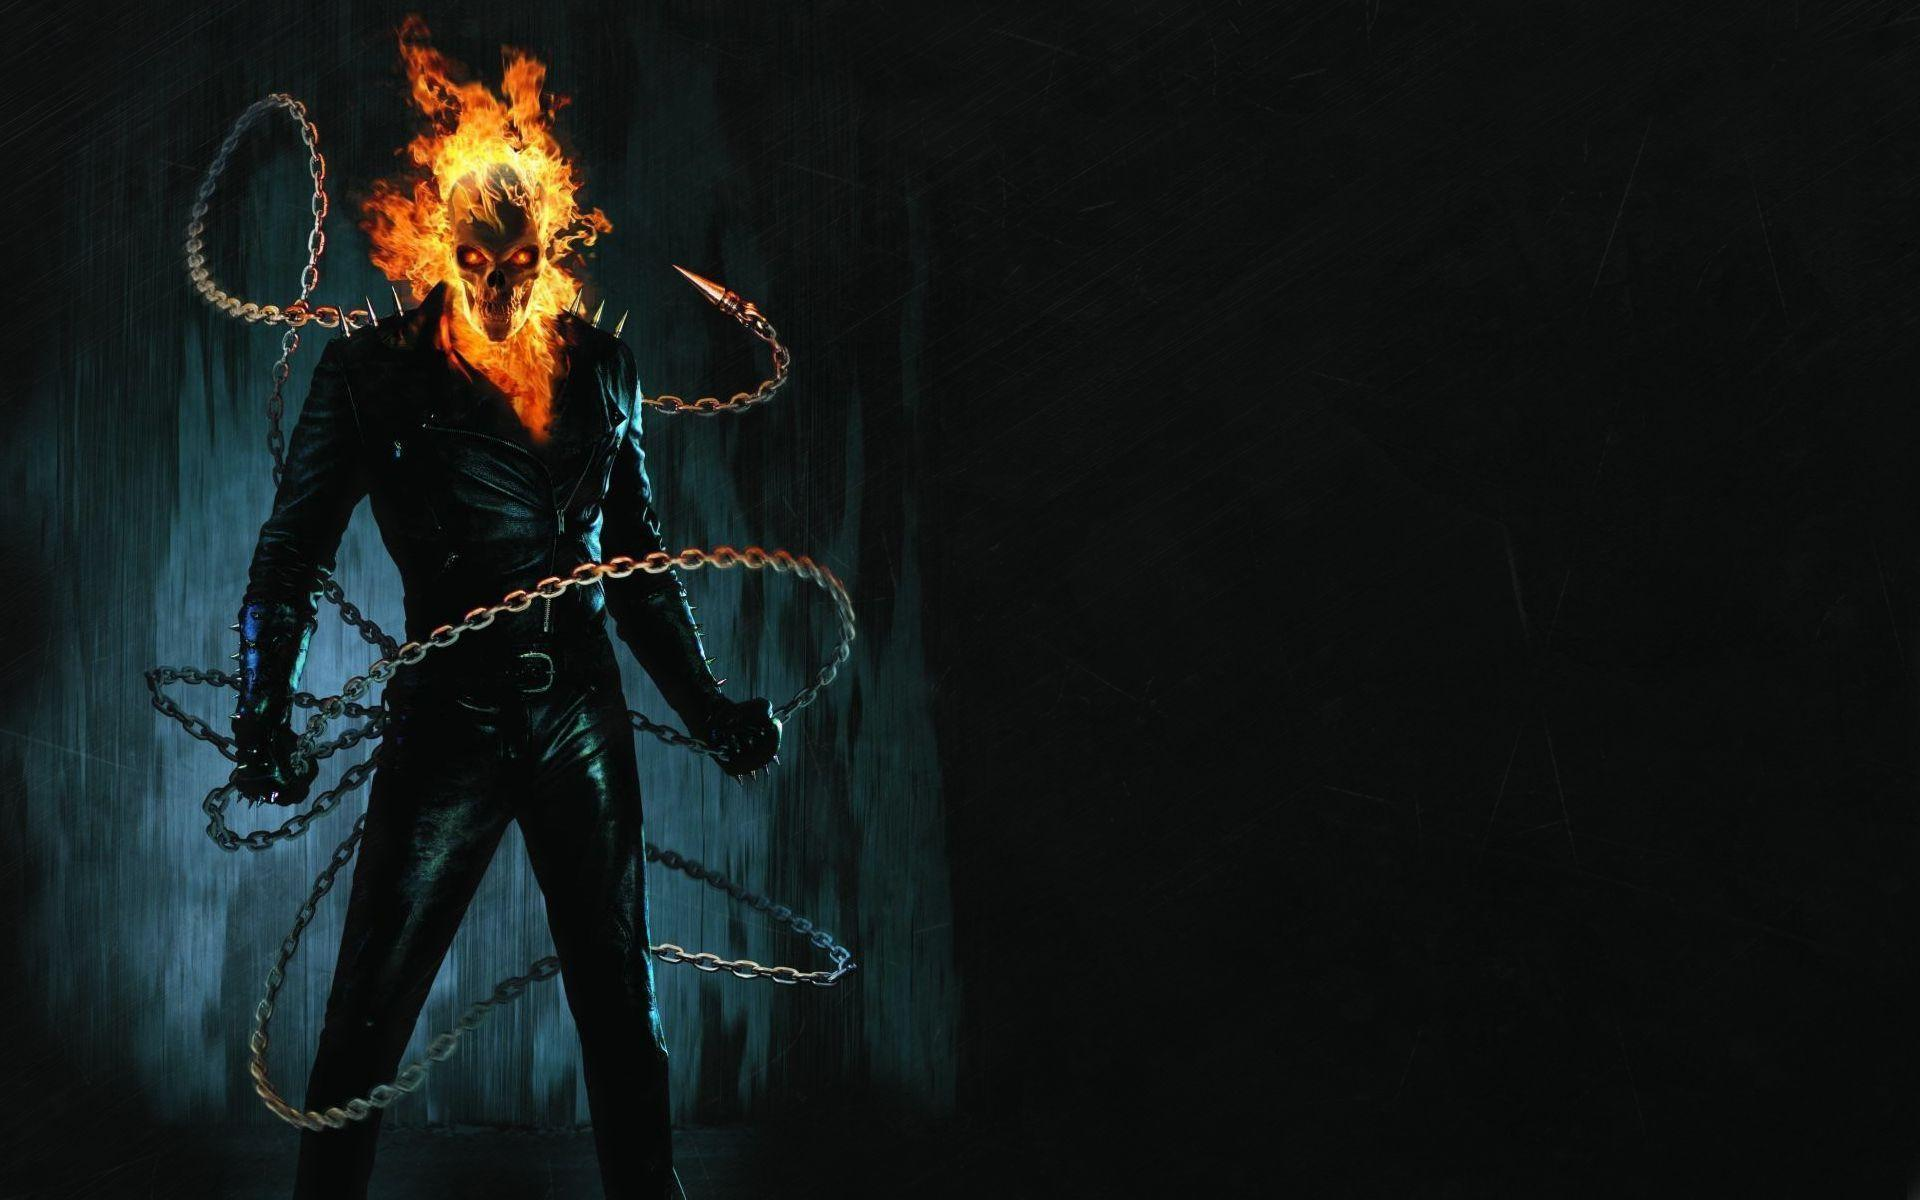 ghost rider wallpapers 2017 - wallpaper cave